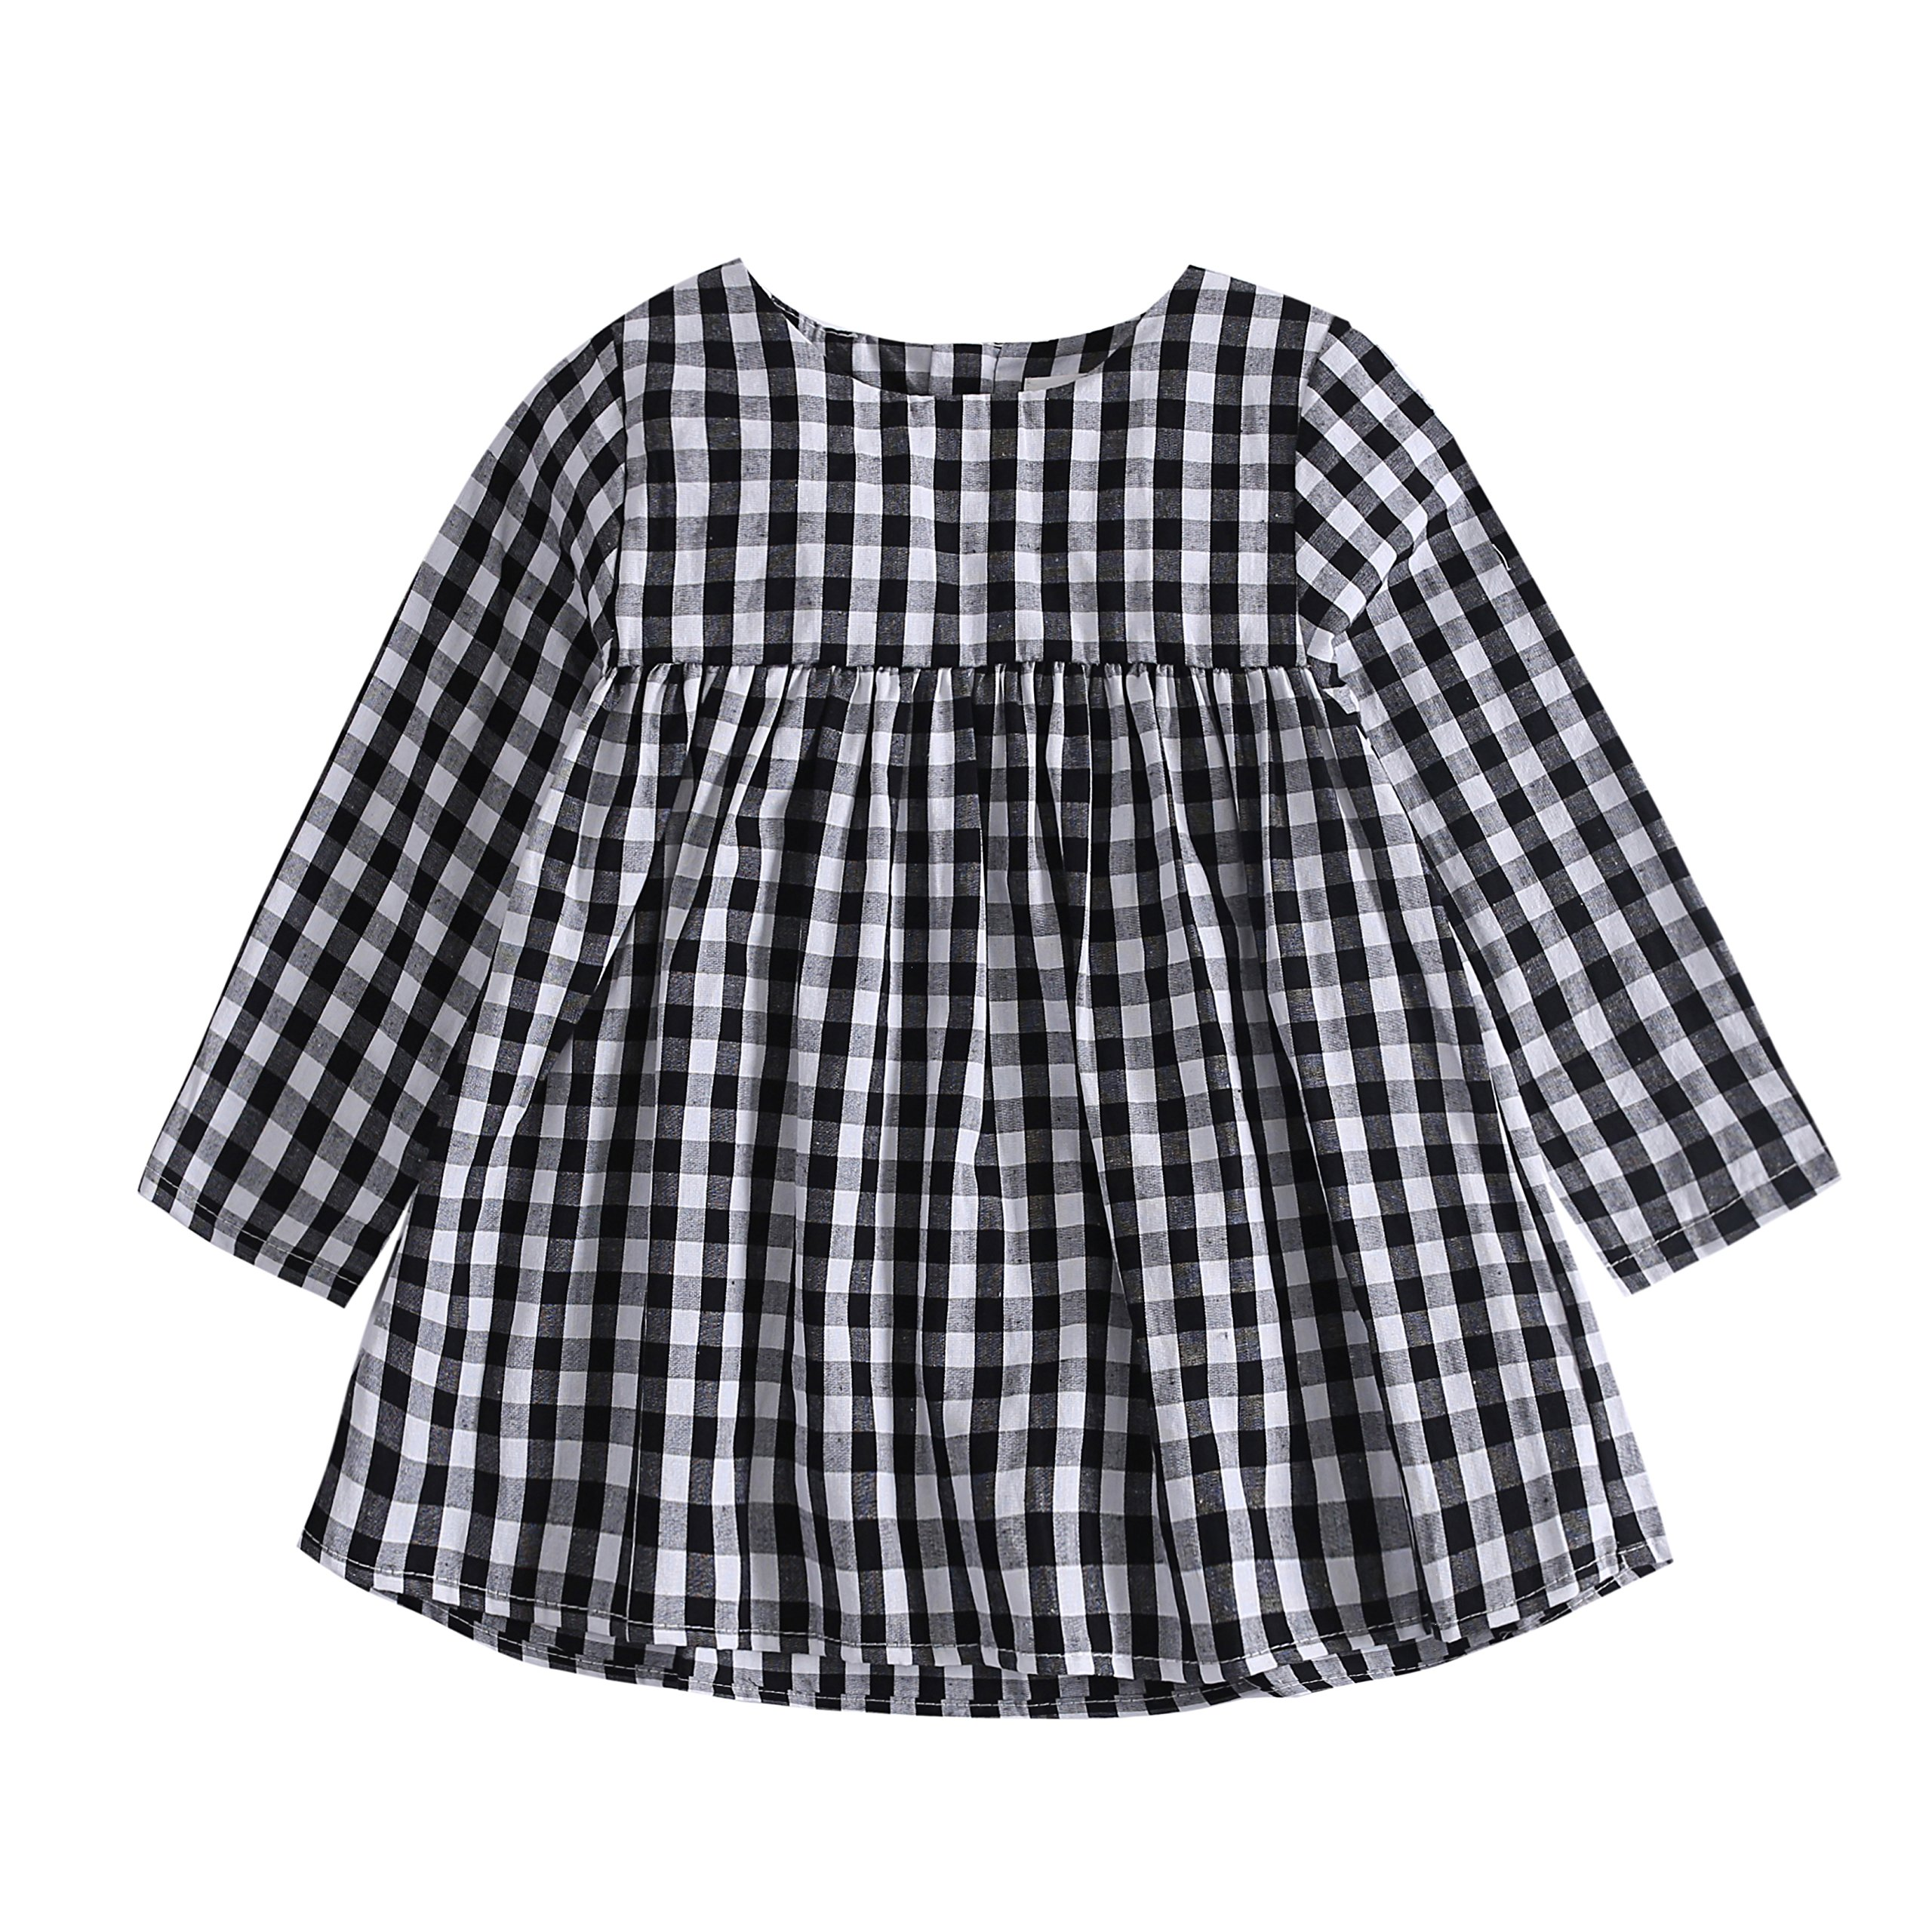 Baywell Baby Girl Plaid Dress, Toddler Girl's Typical Black and White Plaid Long Sleeve Tops Shirt Spring Fall Dresses